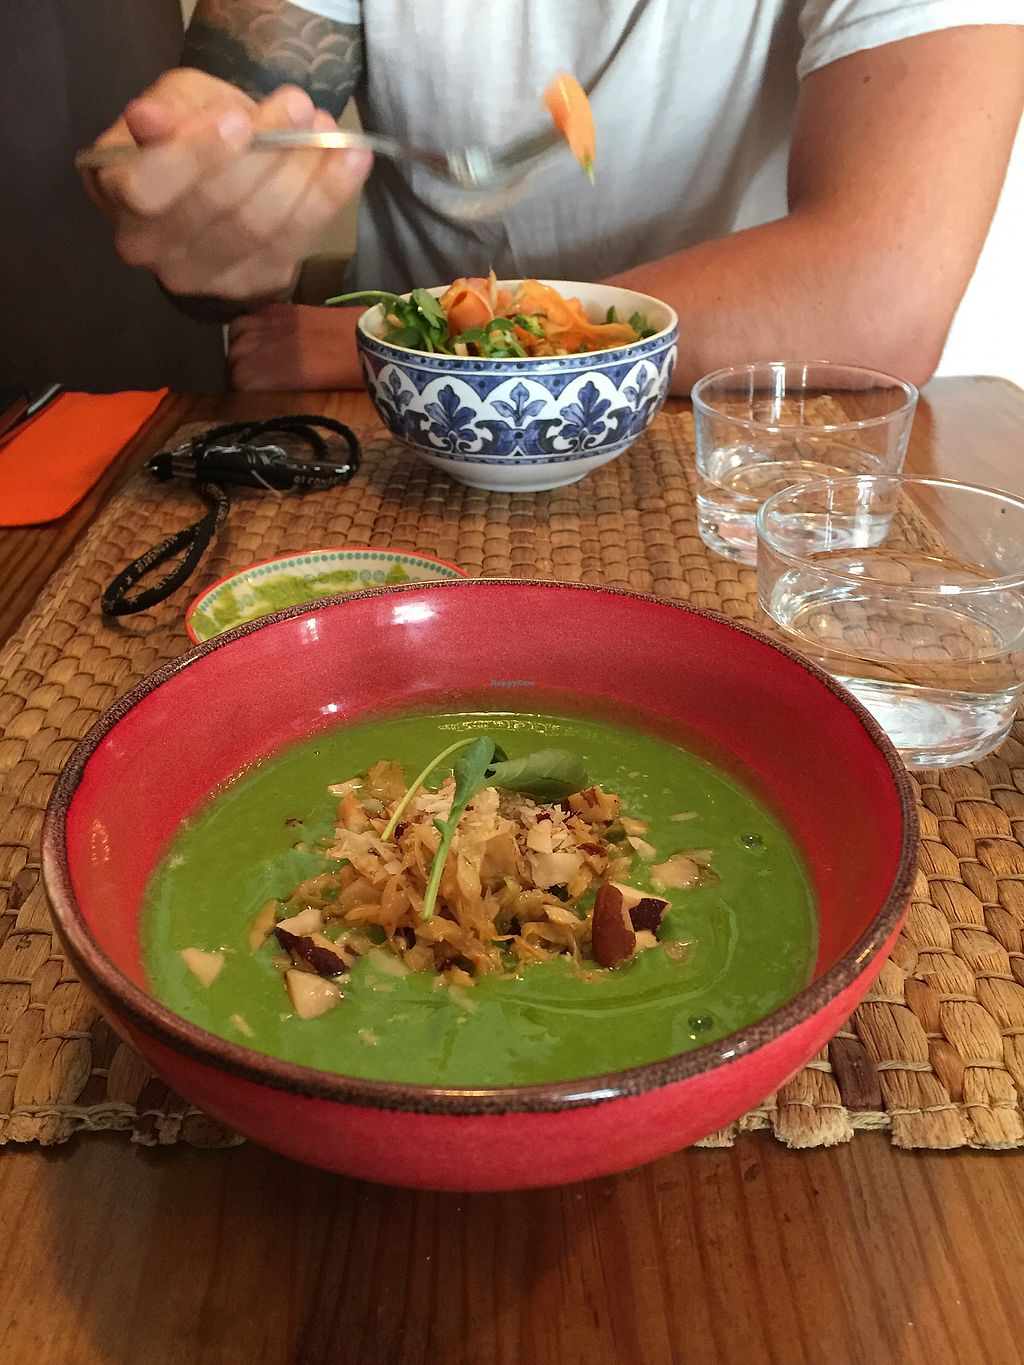 """Photo of Duke Restaurant  by <a href=""""/members/profile/anabelucha"""">anabelucha</a> <br/>green gazpacho <br/> August 23, 2017  - <a href='/contact/abuse/image/99192/296186'>Report</a>"""